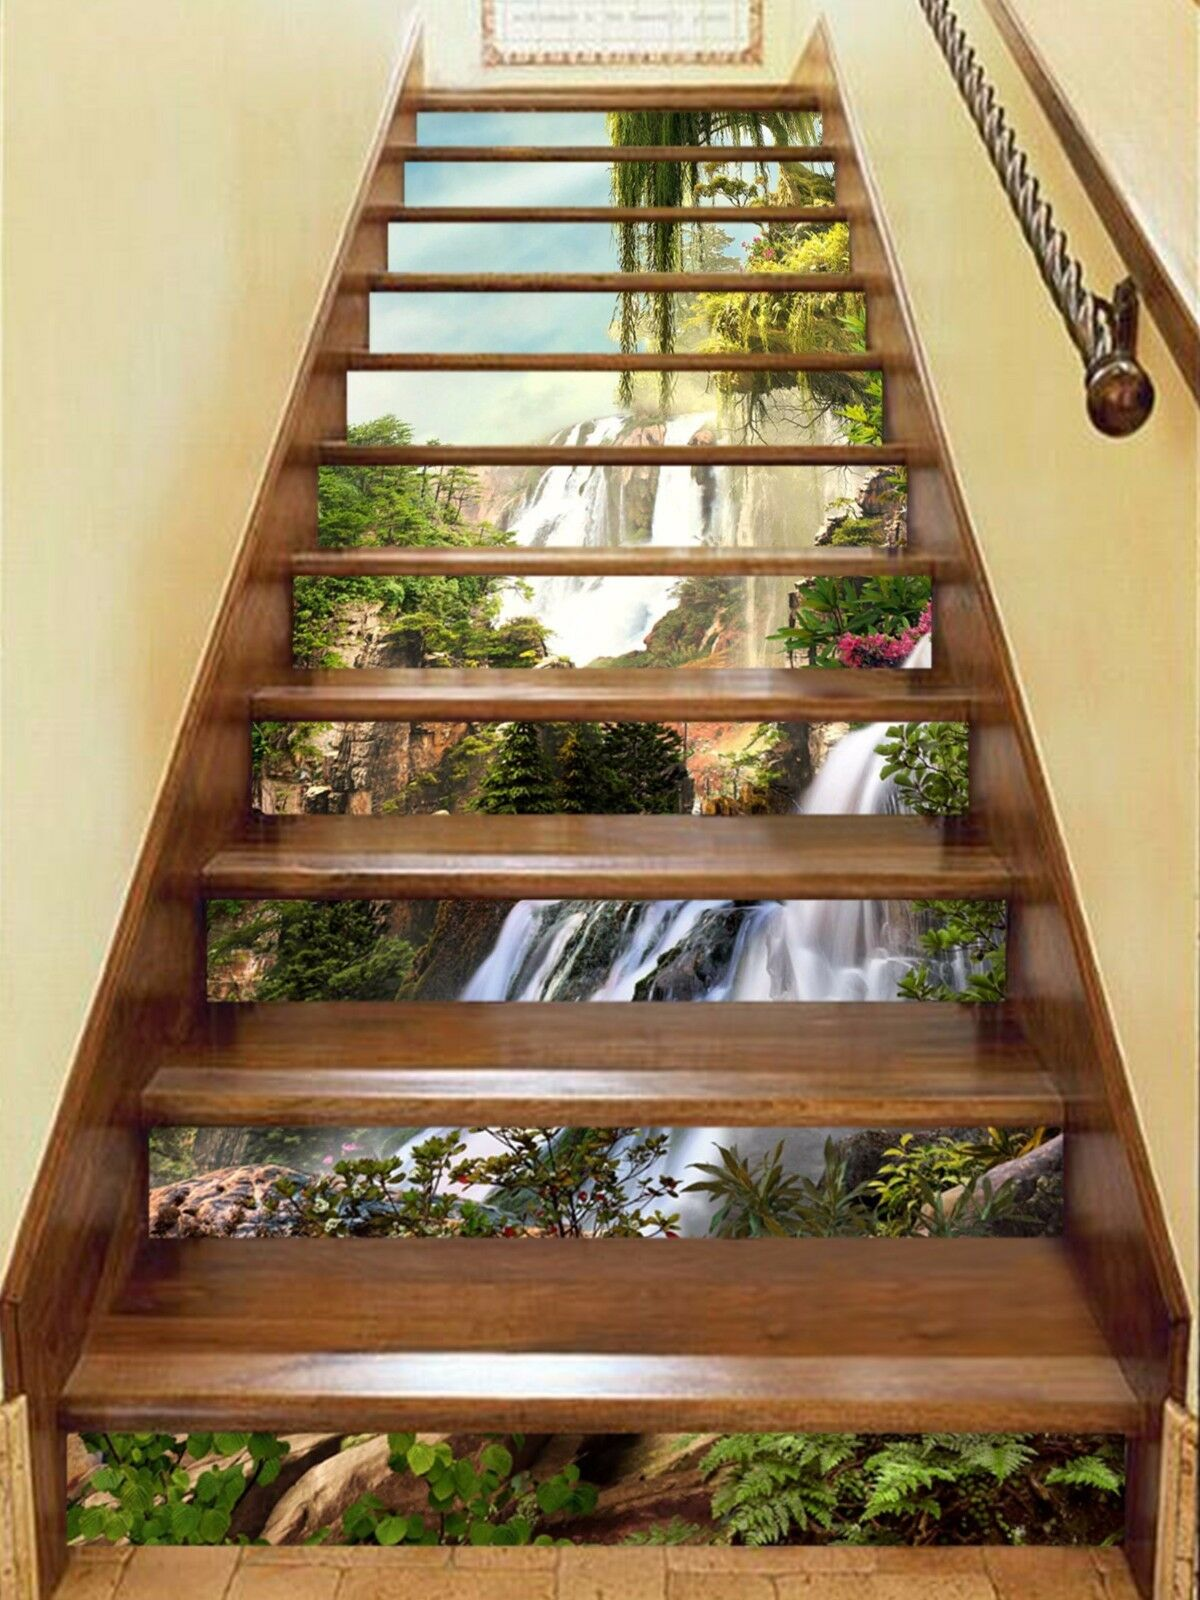 3D Mountain 735 Stair Risers Decoration Photo Mural Vinyl Decal Wallpaper AU